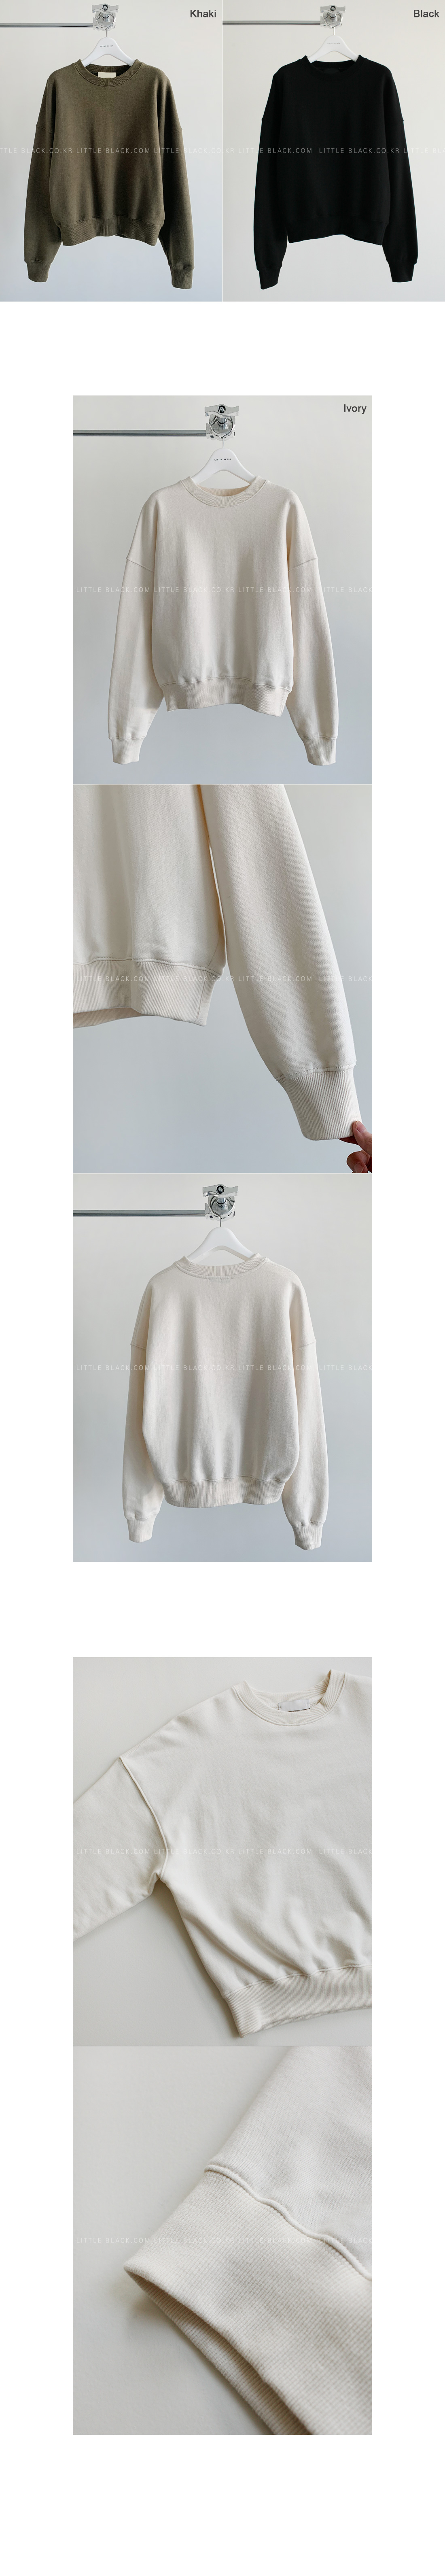 Cotton Ribbed Edge Sweatshirt|